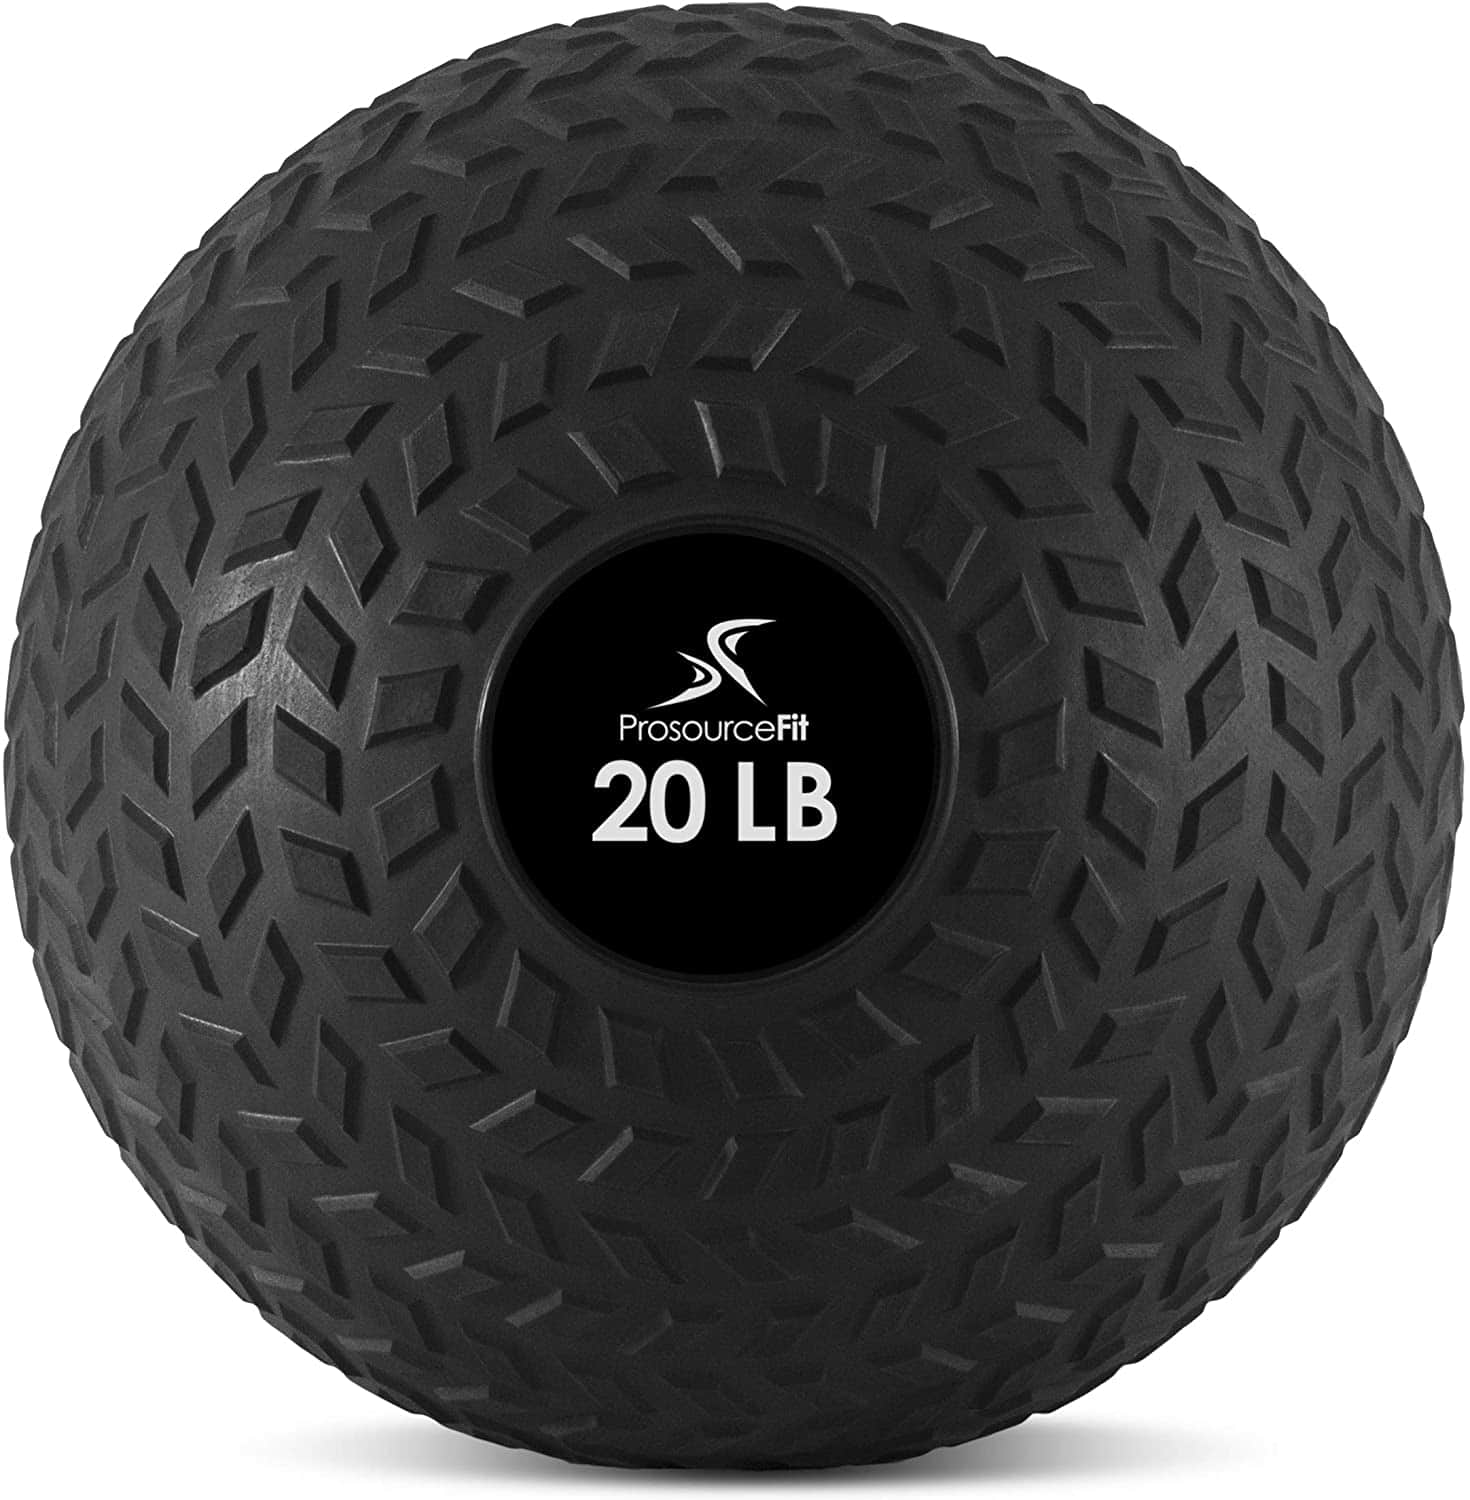 $33.99 -Amazon.com: ProsourceFit Slam Medicine Balls 20lbs Tread Textured Grip Dead Weight Balls for CrossFit, Strength and Conditioning